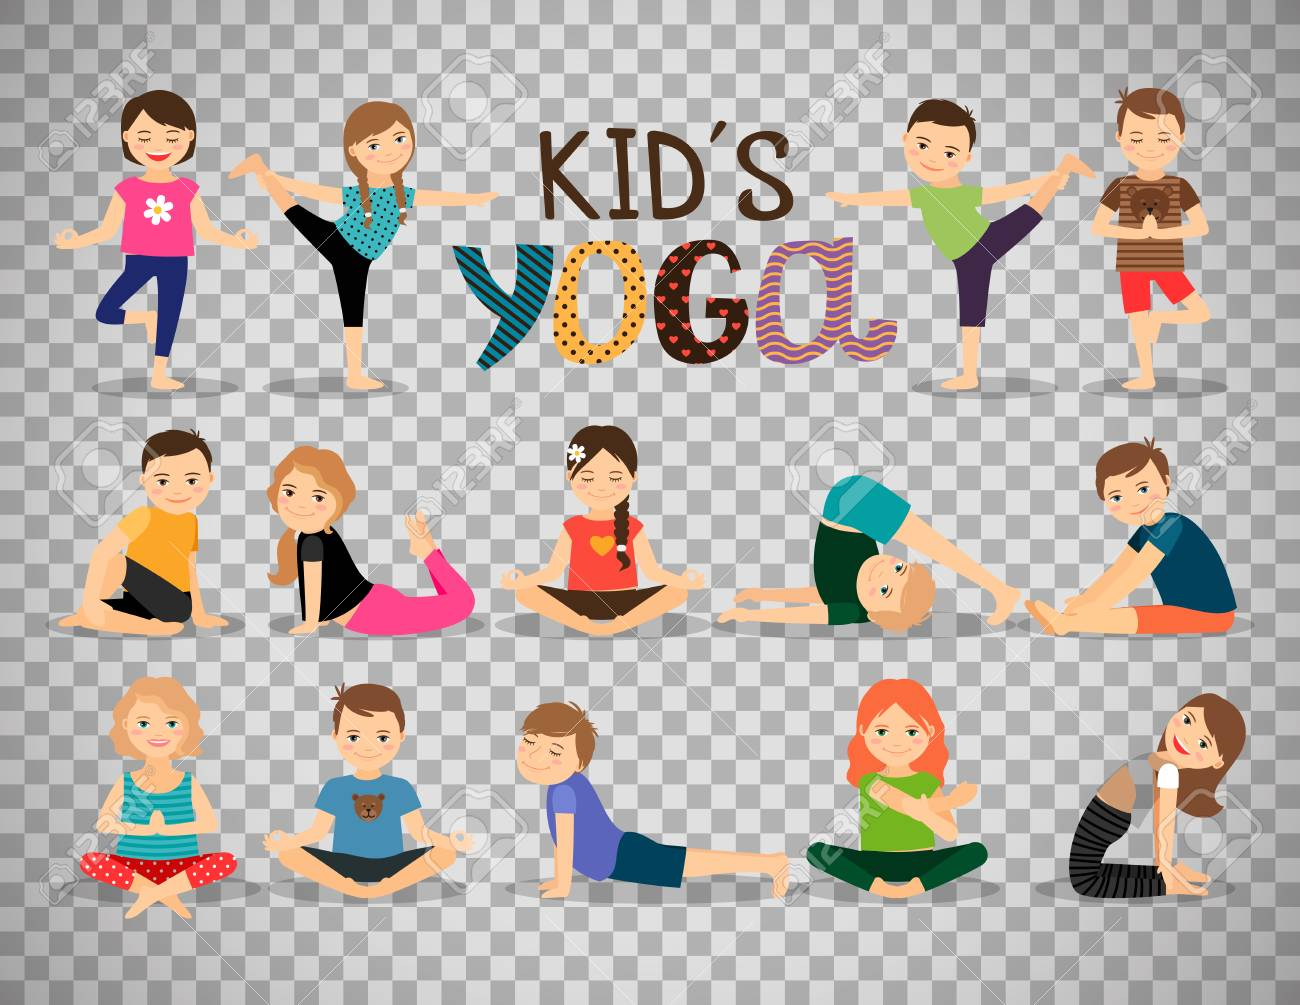 Young Kids In Different Yoga Poses Isolated On Transparent Background Royalty Free Cliparts Vectors And Stock Illustration Image 82448727